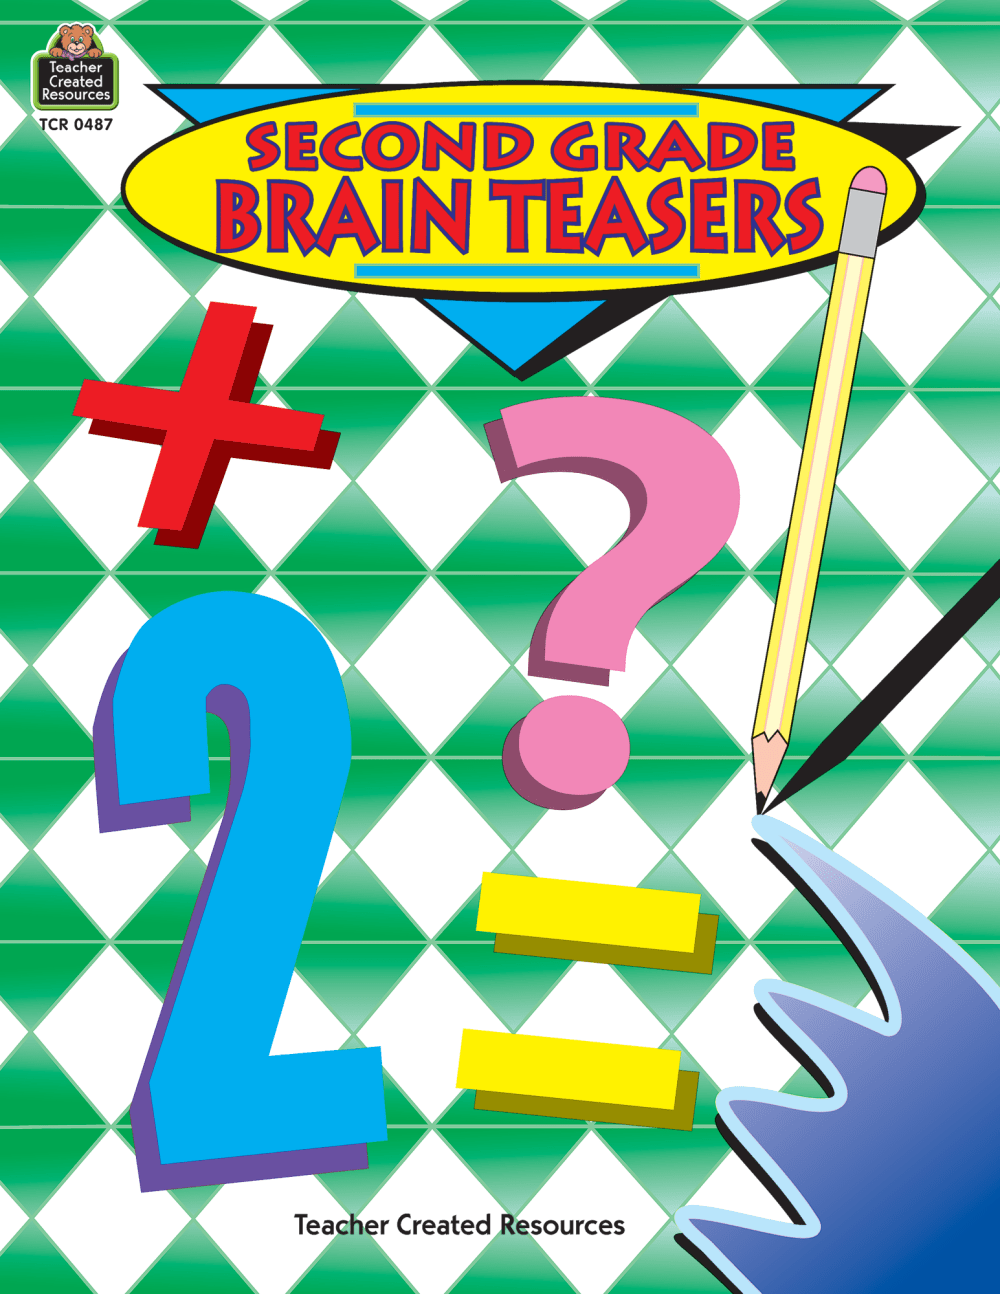 medium resolution of Second Grade Brain Teasers - TCR0487   Teacher Created Resources